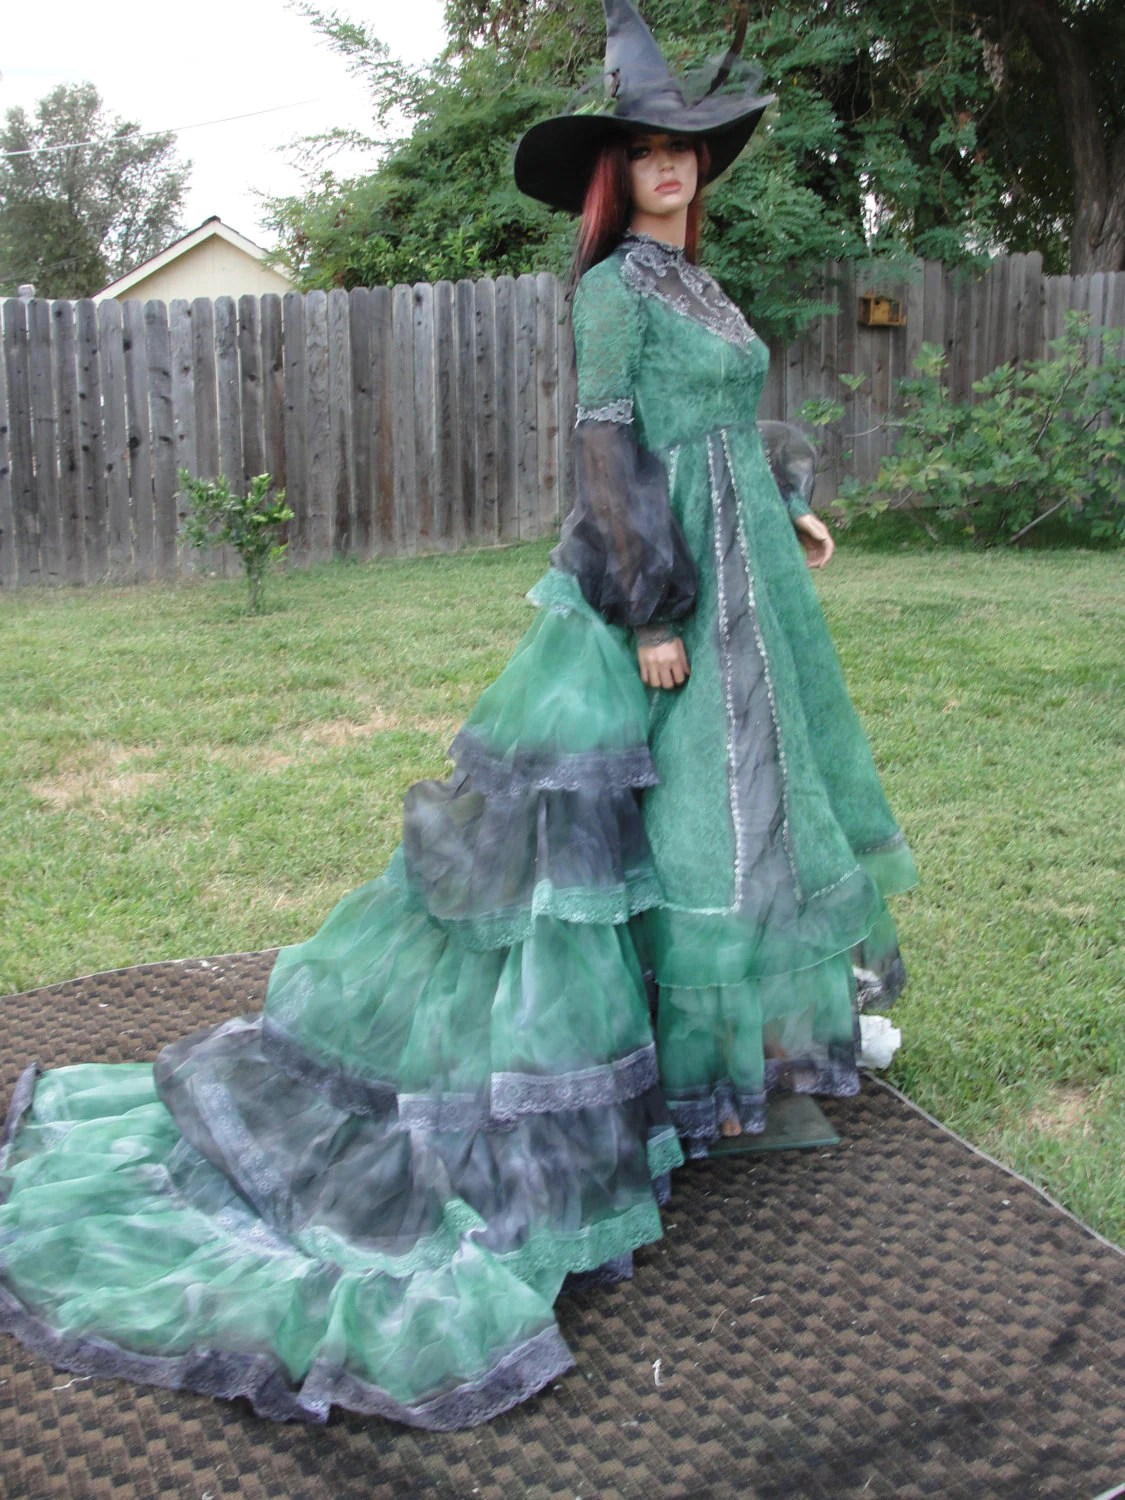 Green And Black Witch Costume Wedding Gown With Hat Small Size